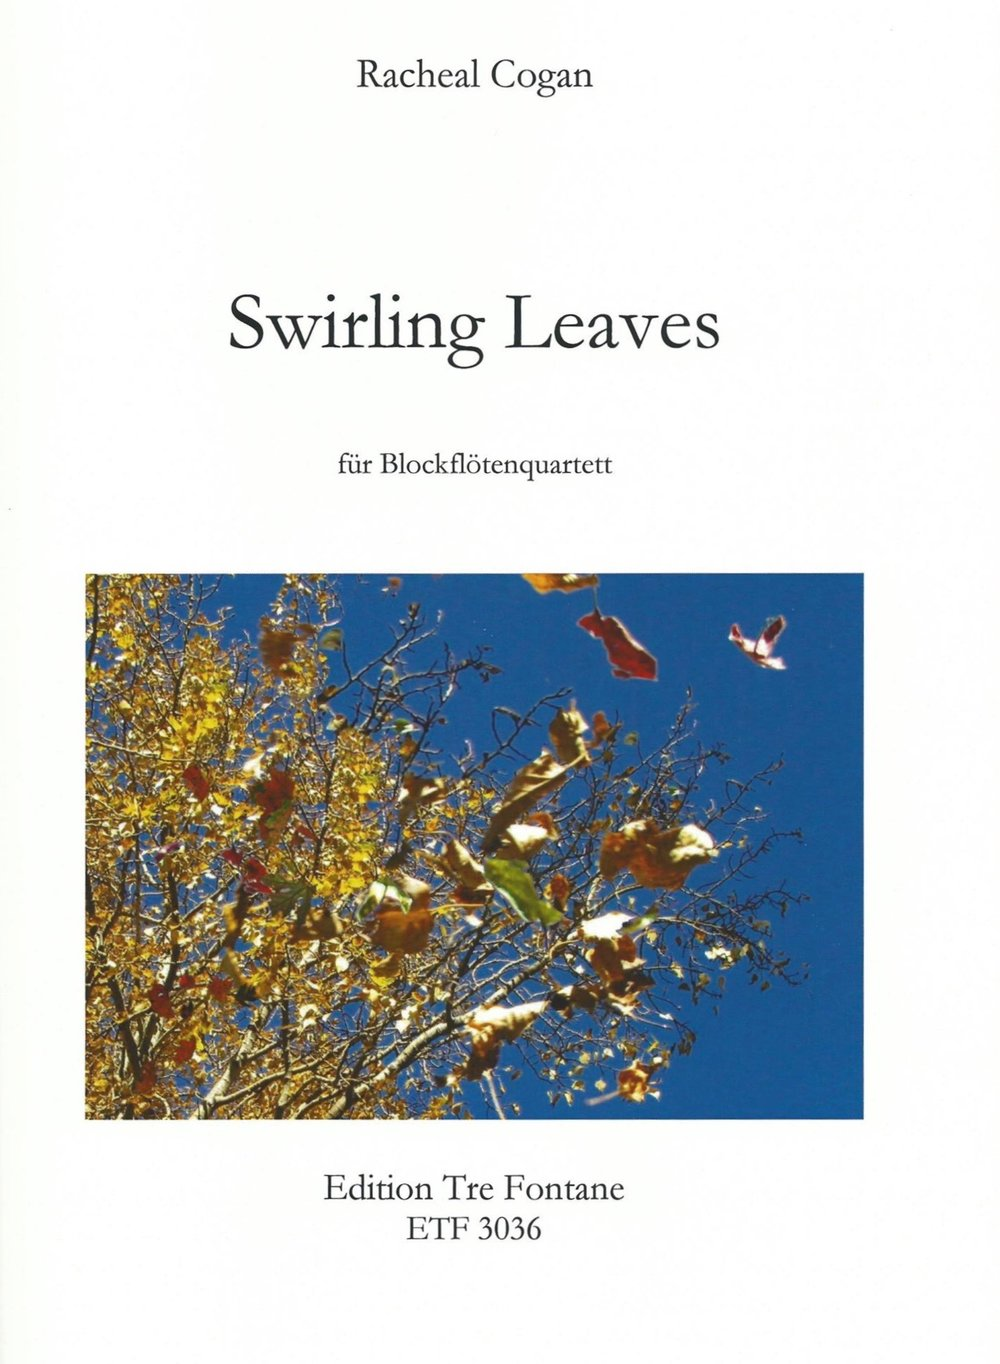 swirling-leaves-booklet-1.jpg